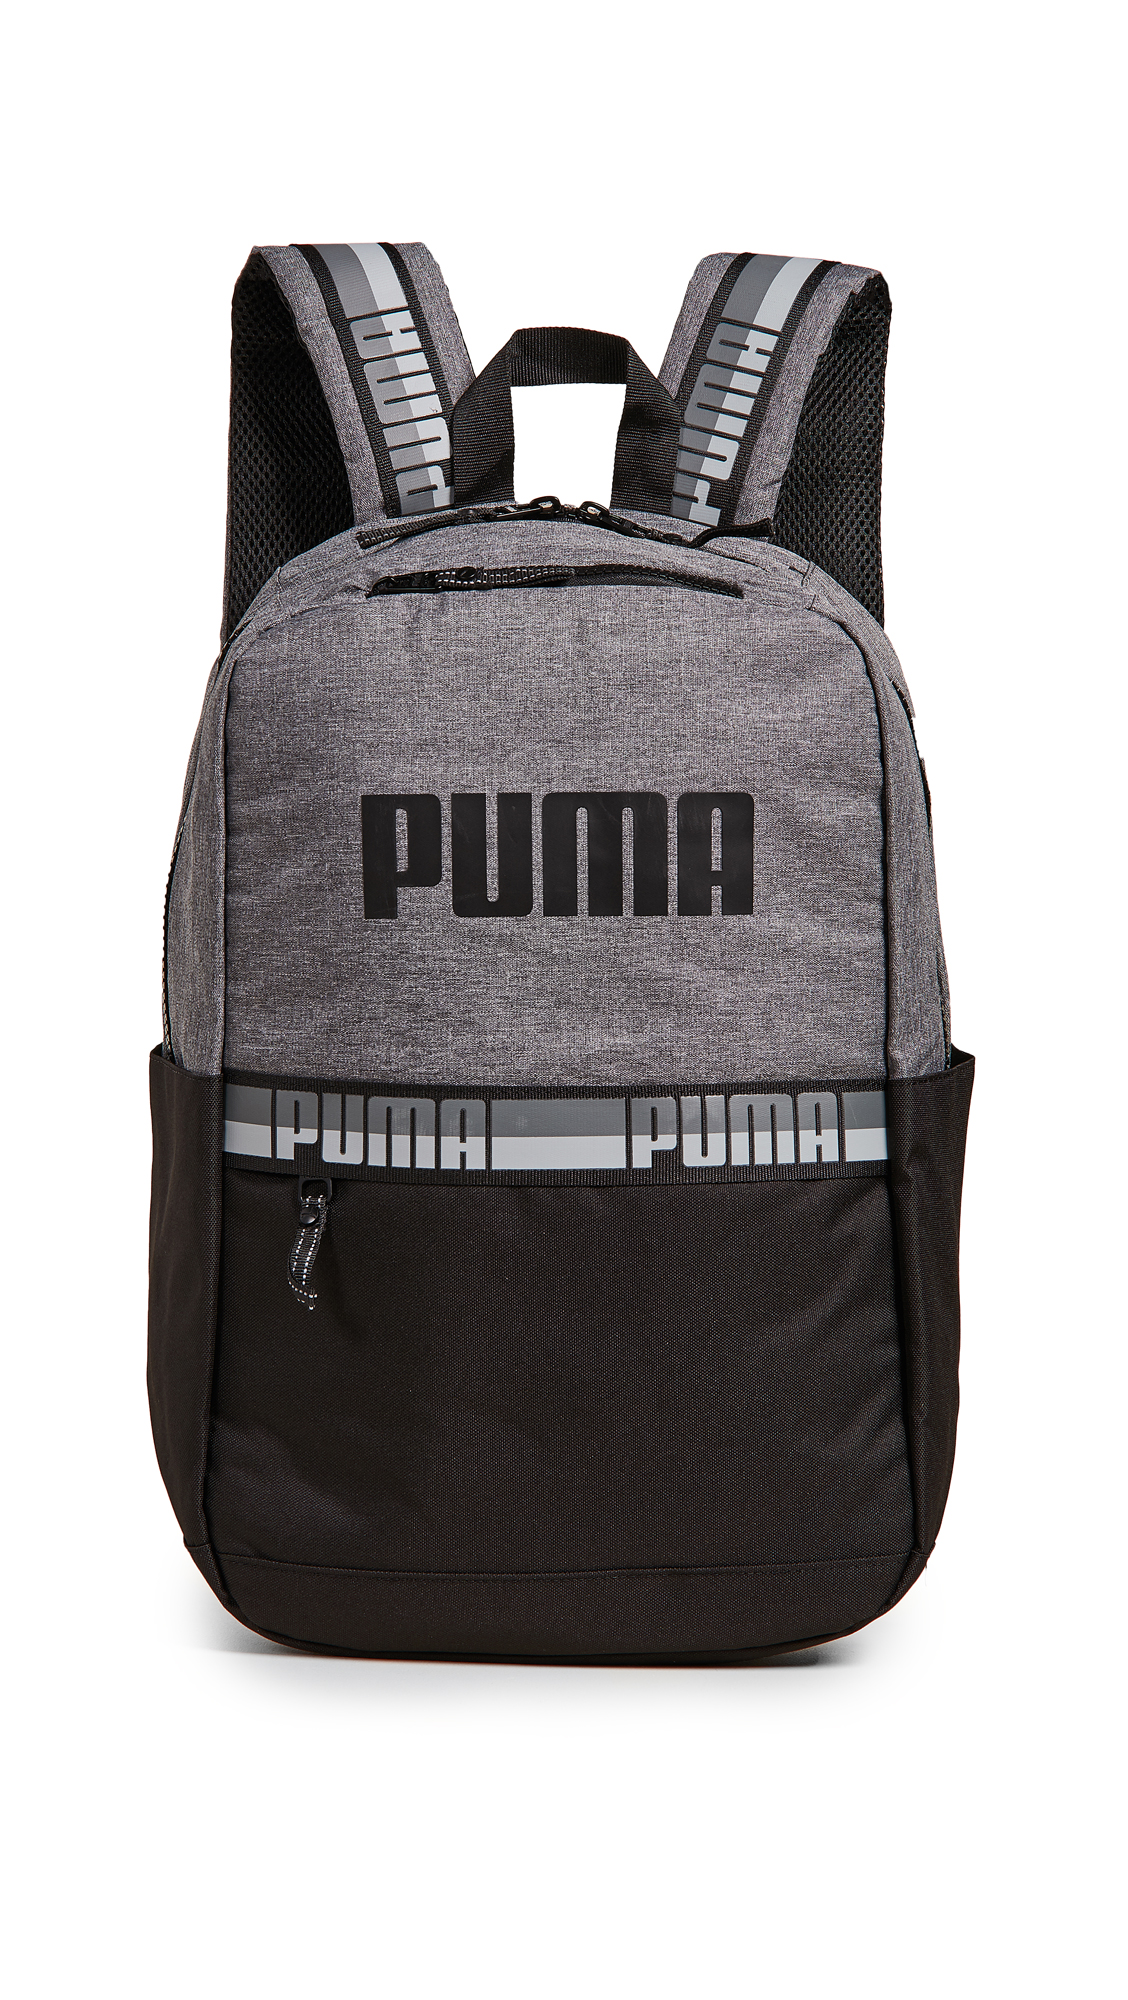 SPEEDWAY BACKPACK from Shopbop